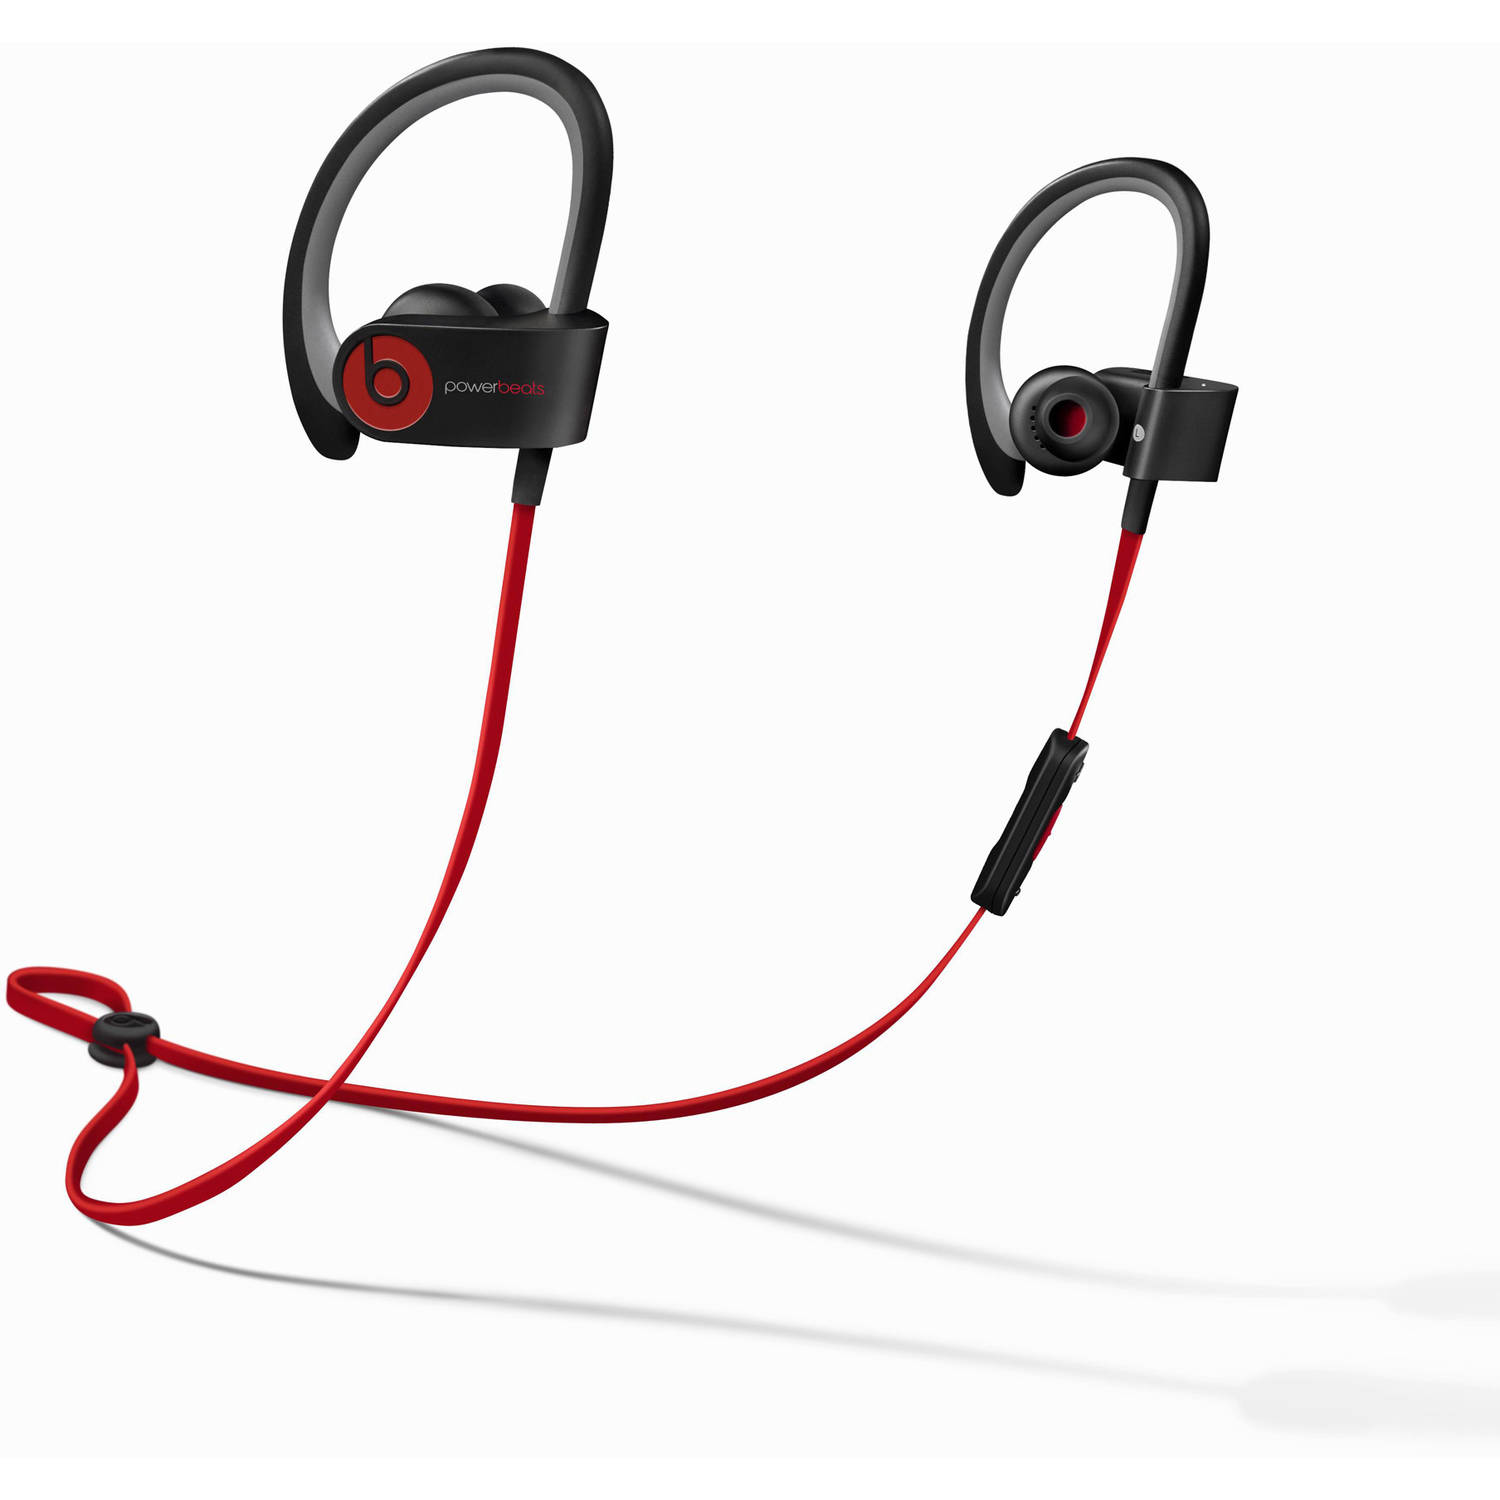 Refurbished Beats by Dr. Dre Powerbeats2 Wireless In Ear Headphones